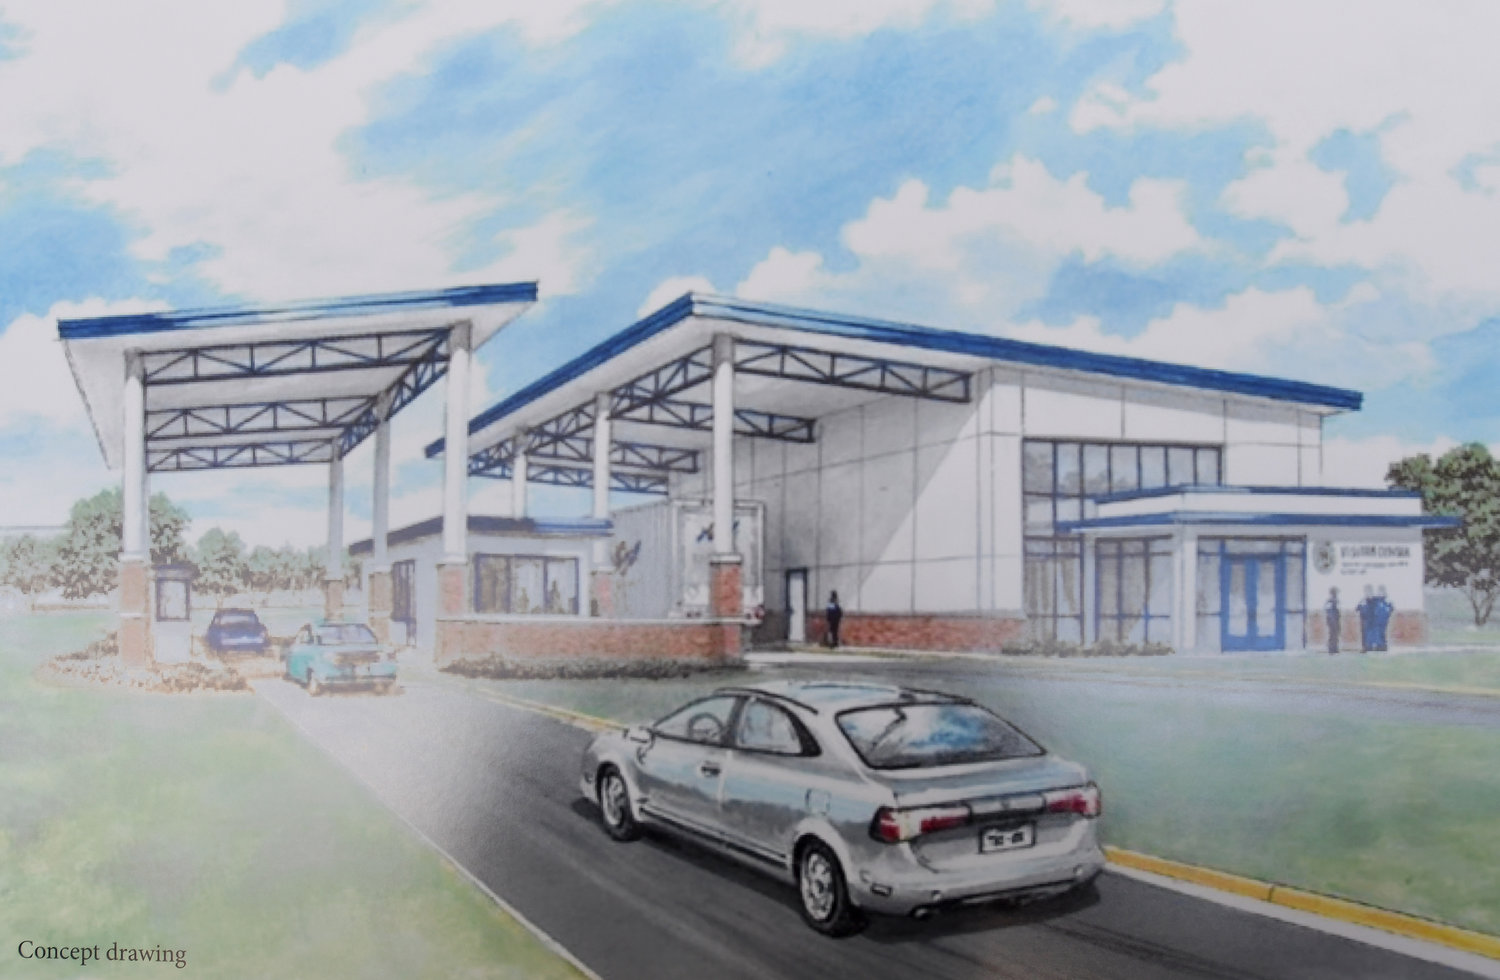 SECURITY SYSTEM VISITOR CENTER — This concept drawing shows a visitor control center that will be part of a new perimeter security system at the Air Force's Rome Lab. A groundbreaking ceremony for the $13.15 million project was held Wednesday. (Artist rendering submitted)